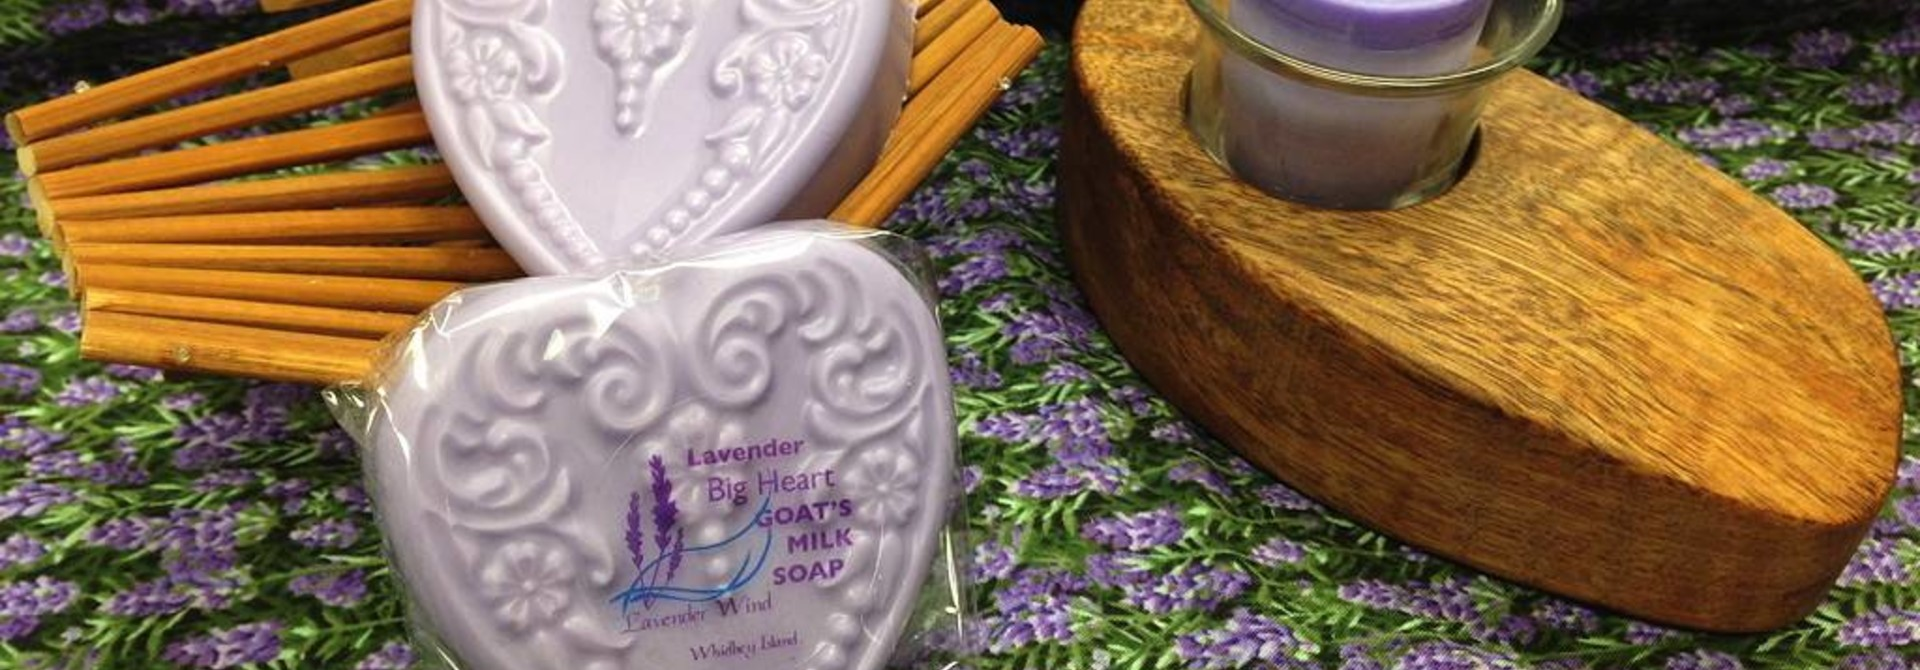 Goat's Milk Soap Big Heart Lavender